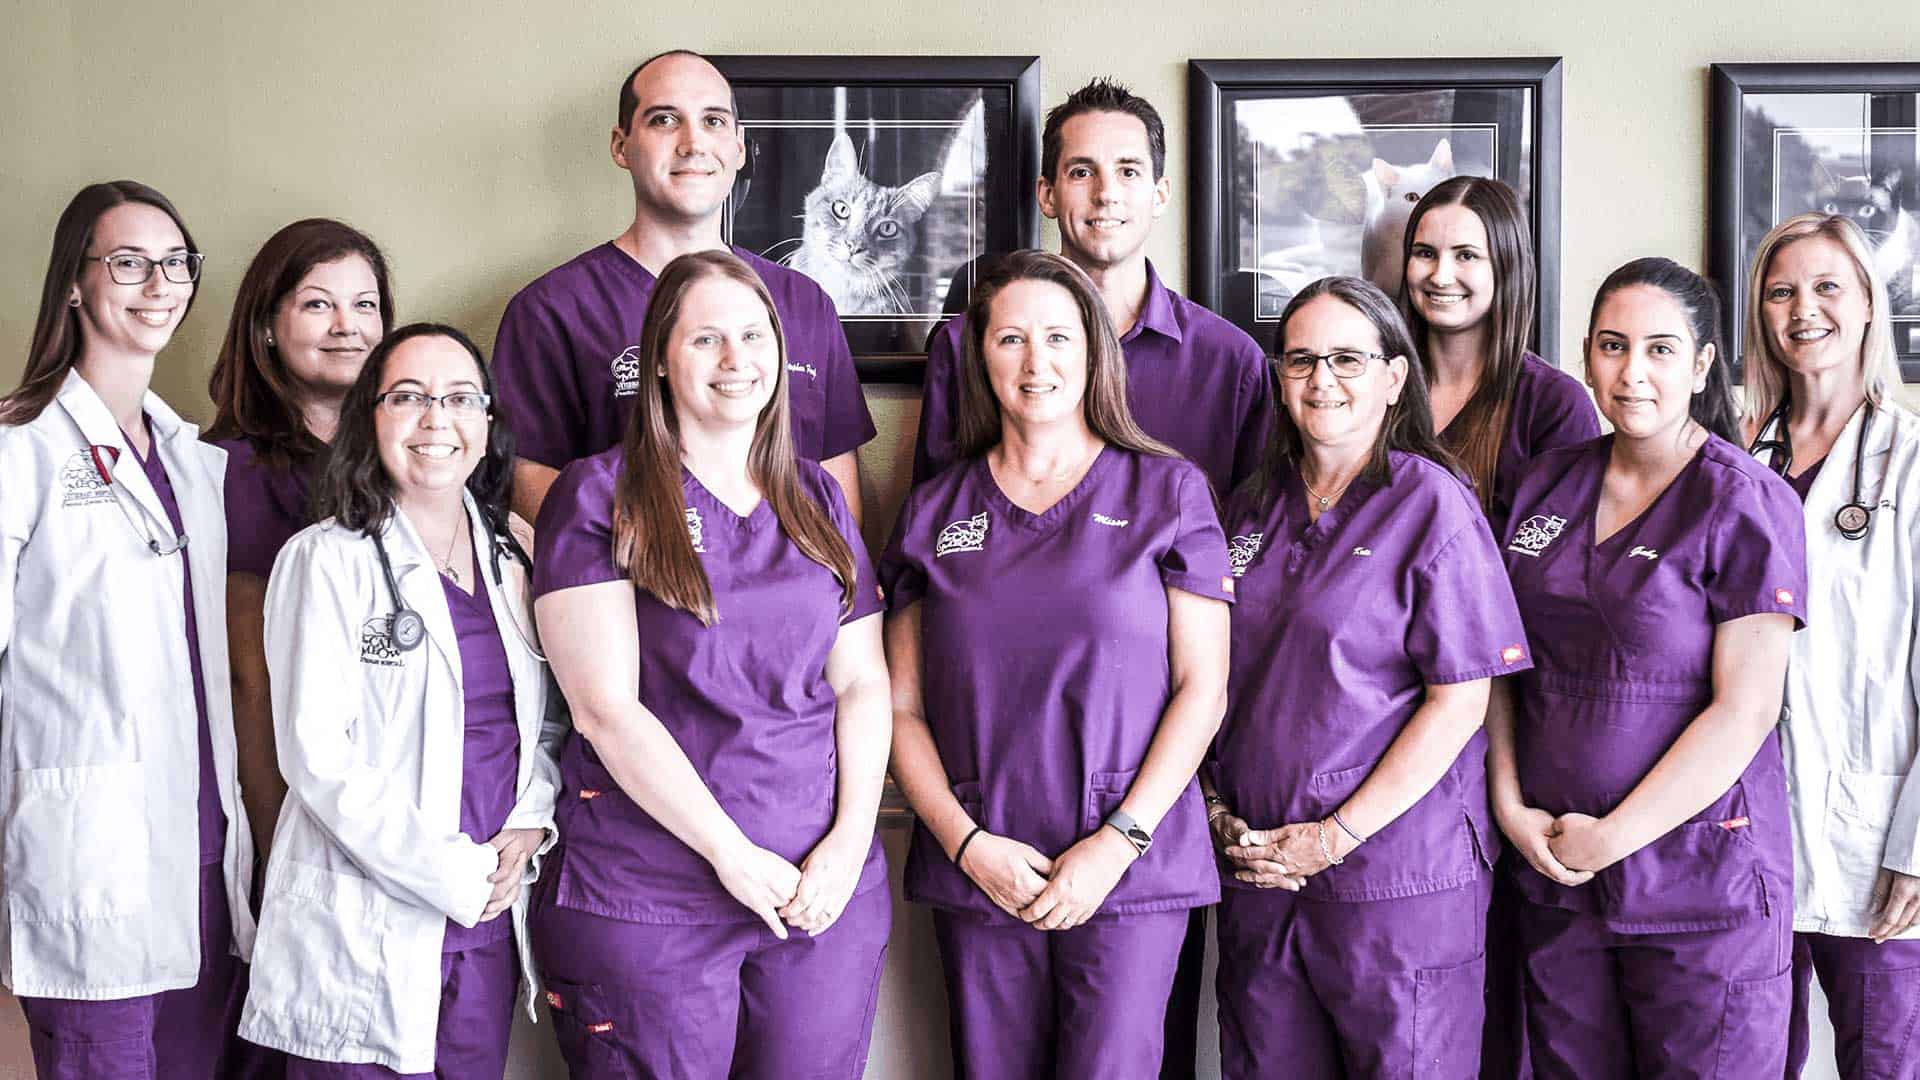 The staff and doctors of The Cat's Meow Veterinary Hospital.